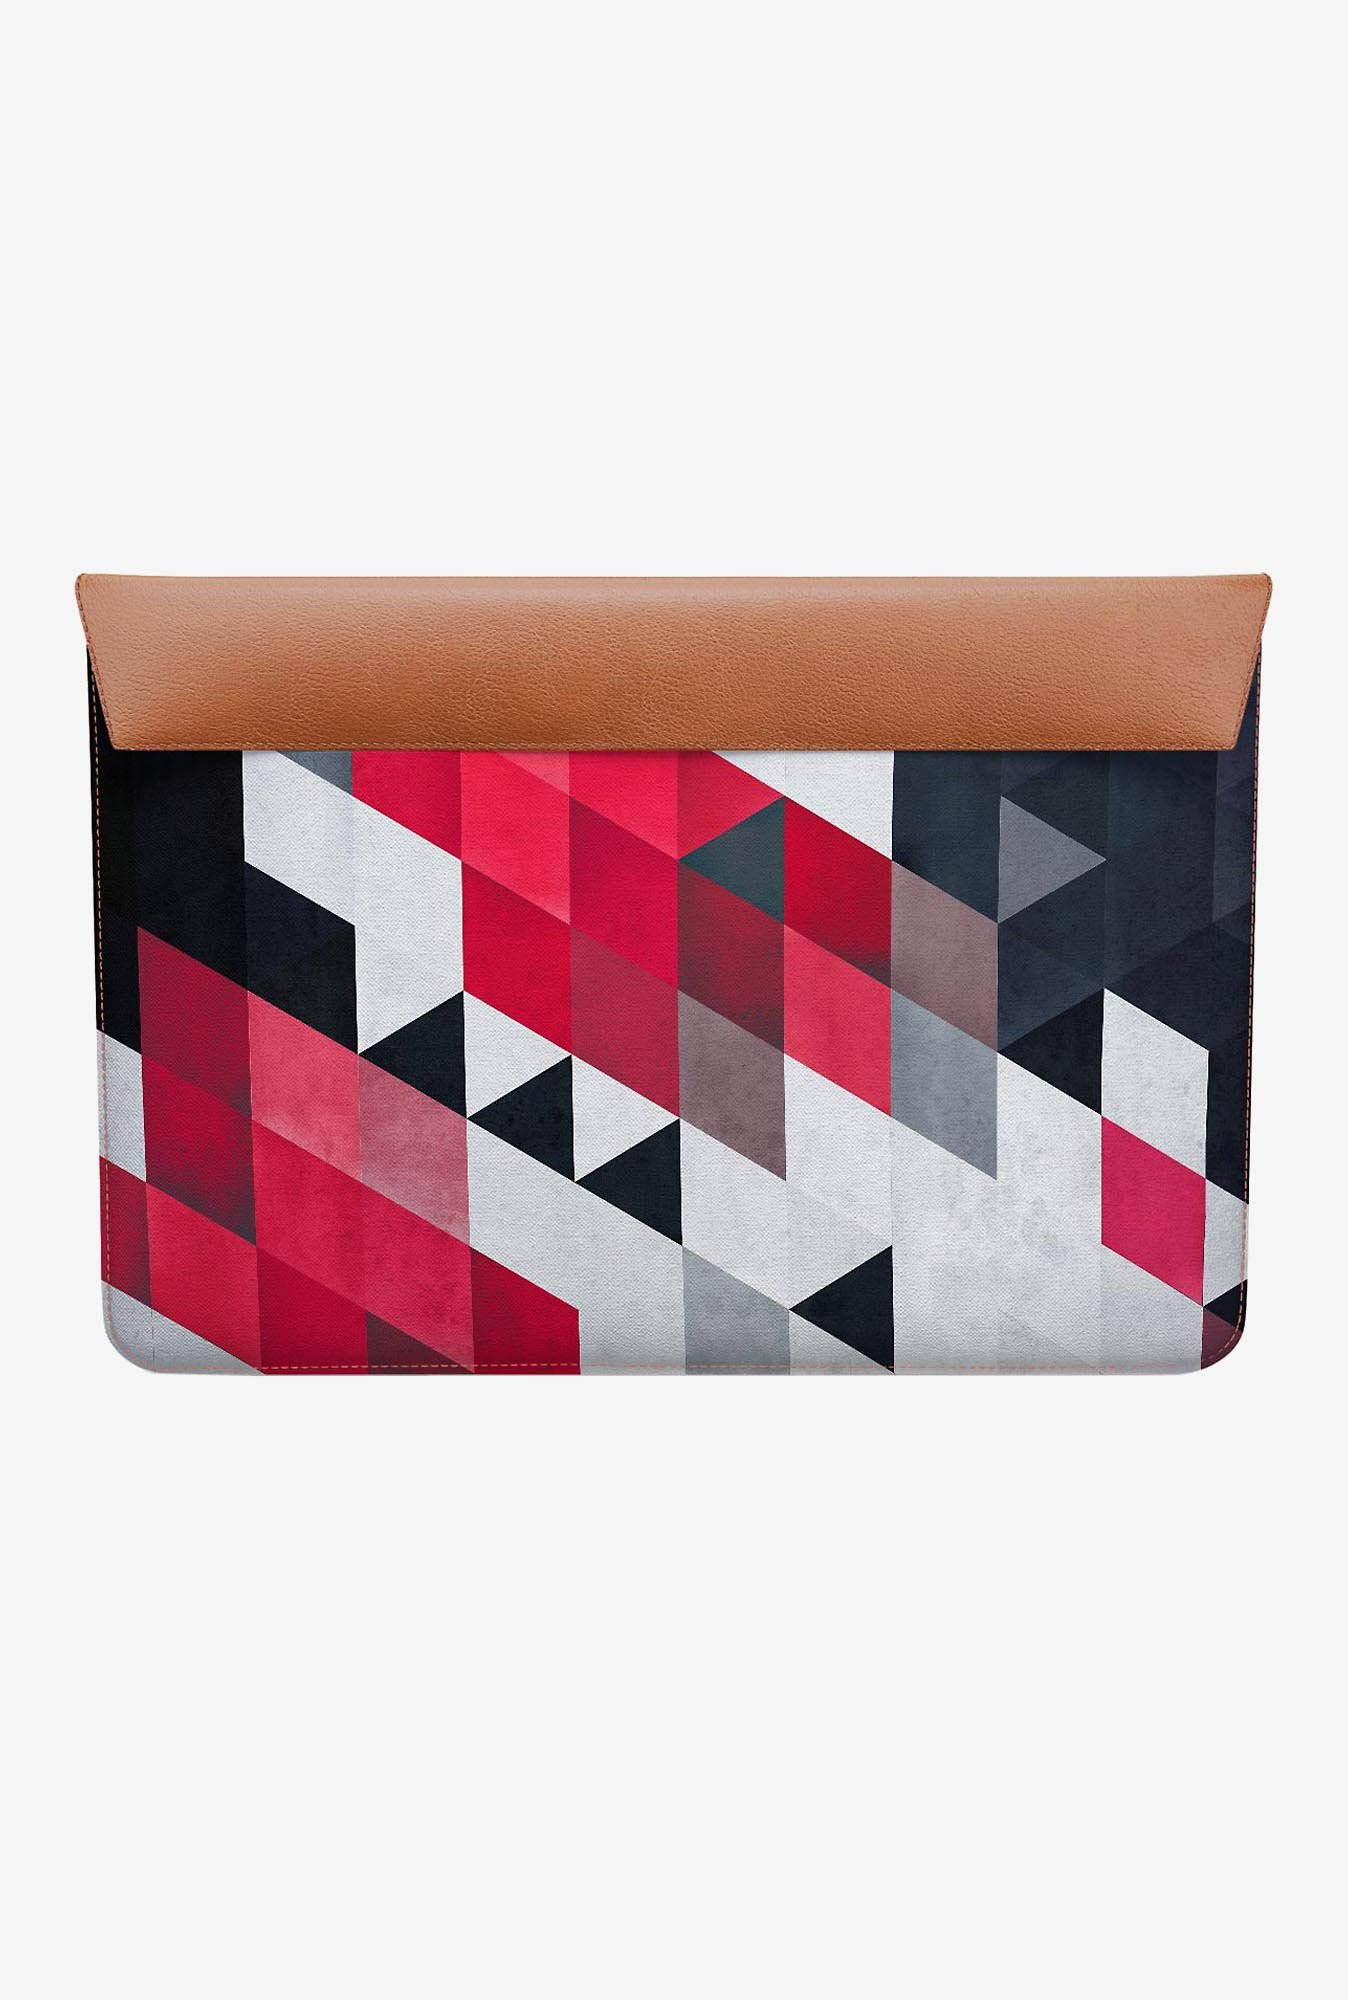 DailyObjects cyrysse MacBook Air 11 Envelope Sleeve